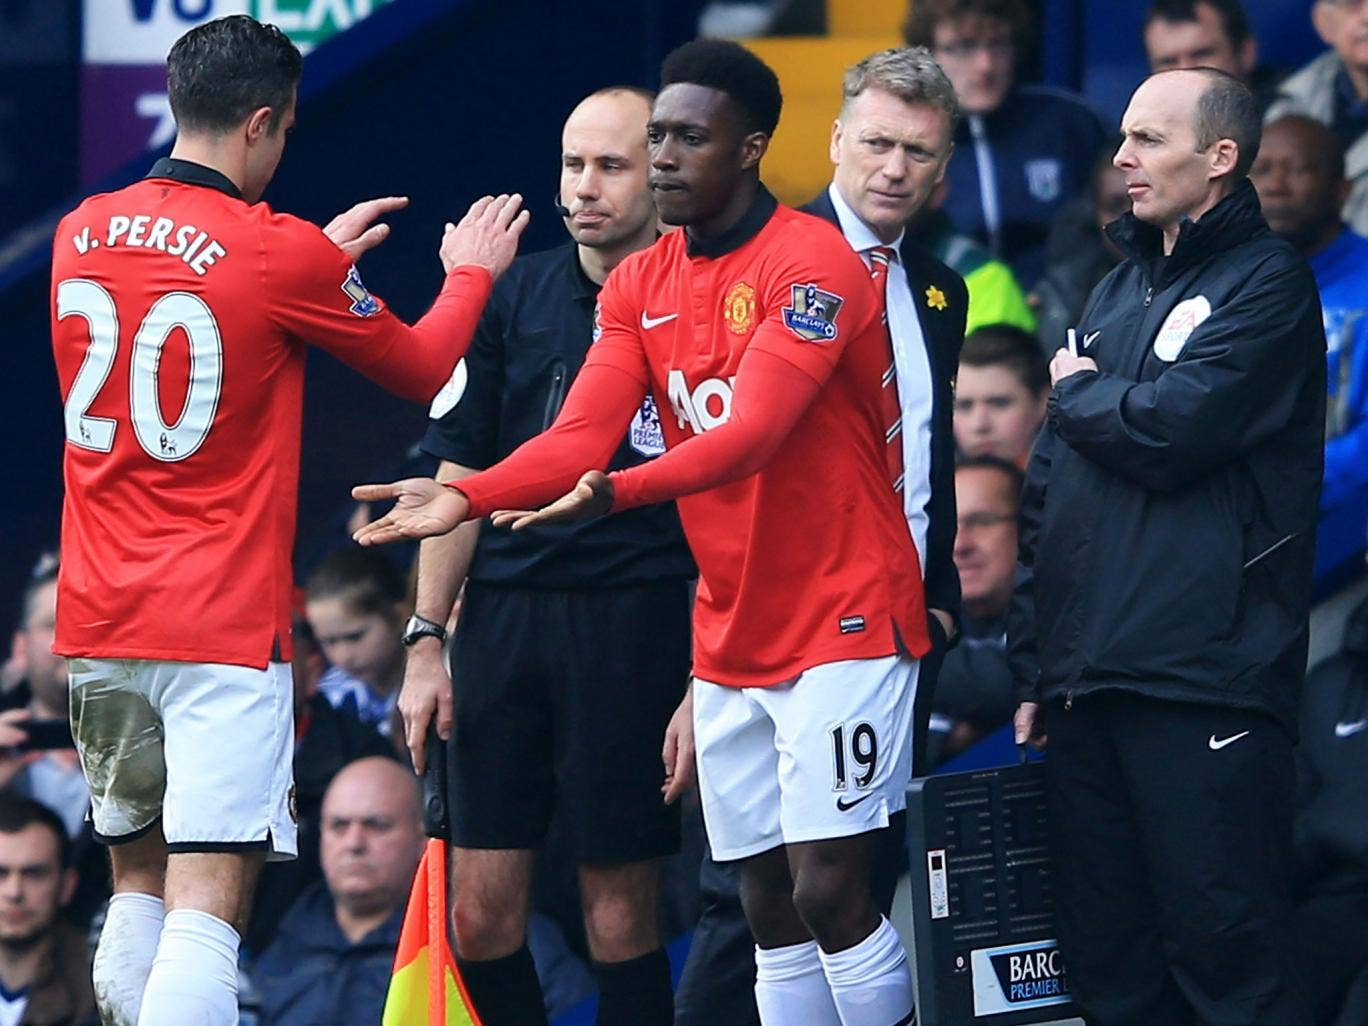 Danny Welbeck, centre, replaces Robin van Persie, left, at West Bromwich